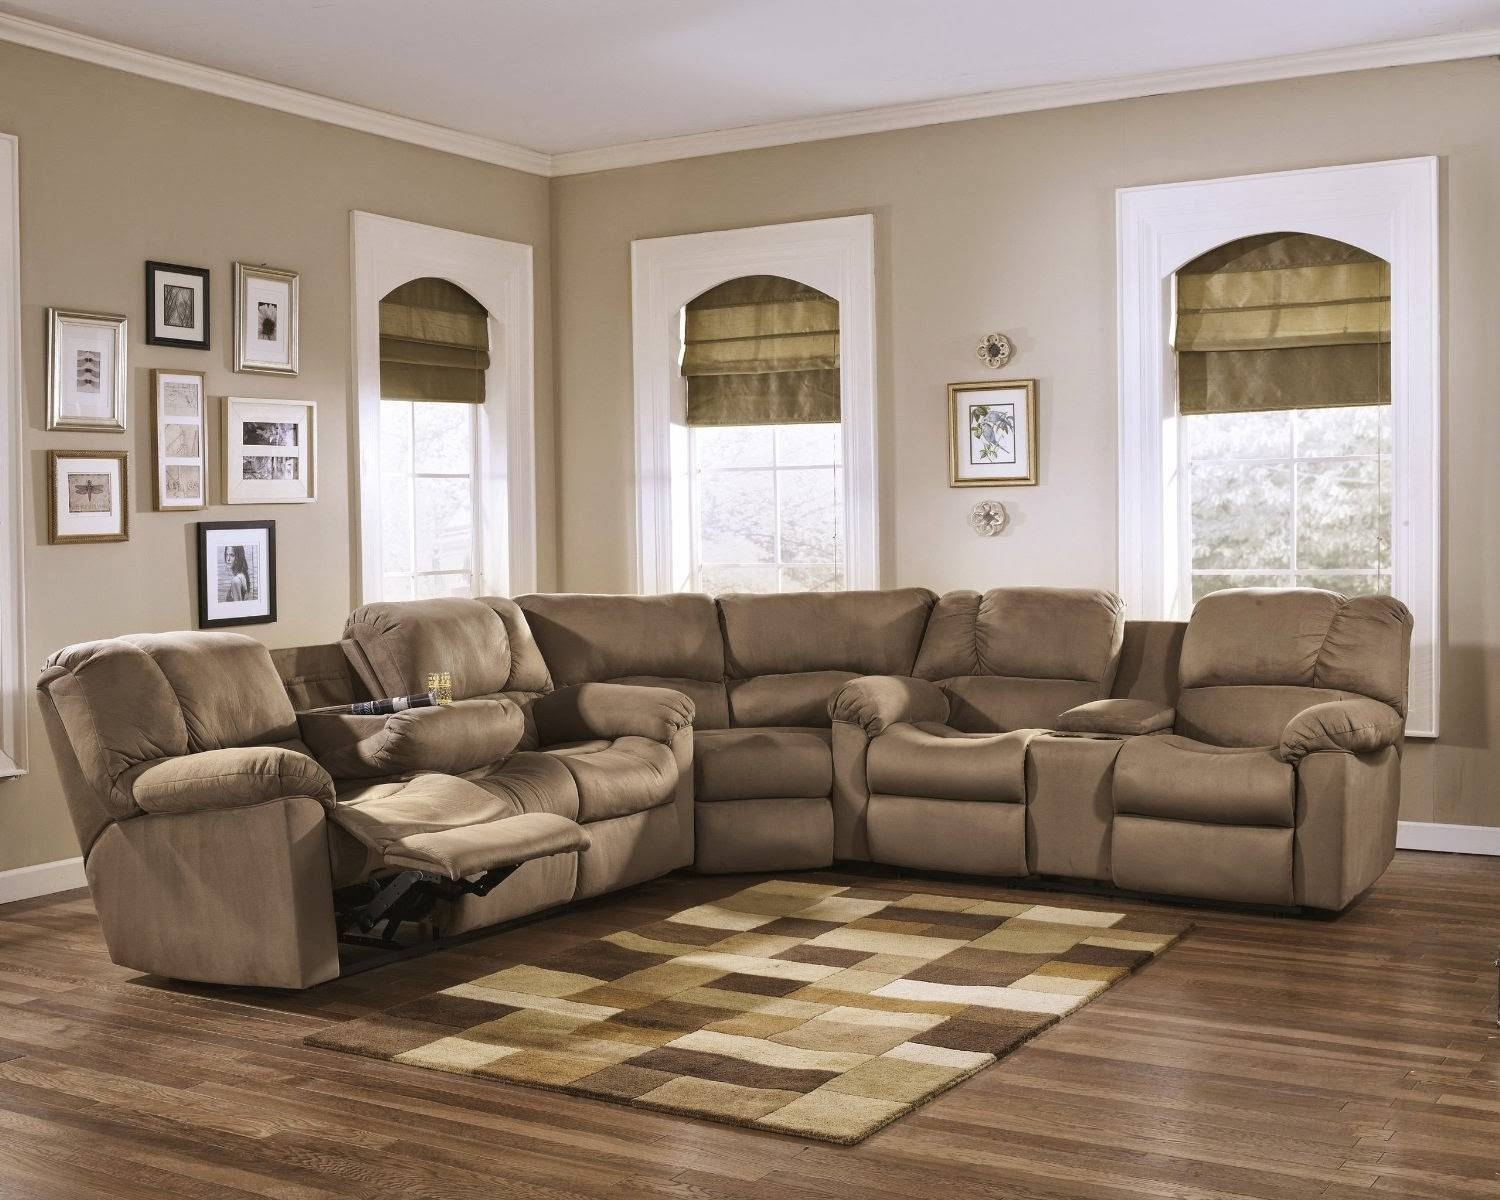 Best Leather Reclining Sofa Brands Reviews: Curved Leather inside Curved Recliner Sofa (Image 2 of 30)